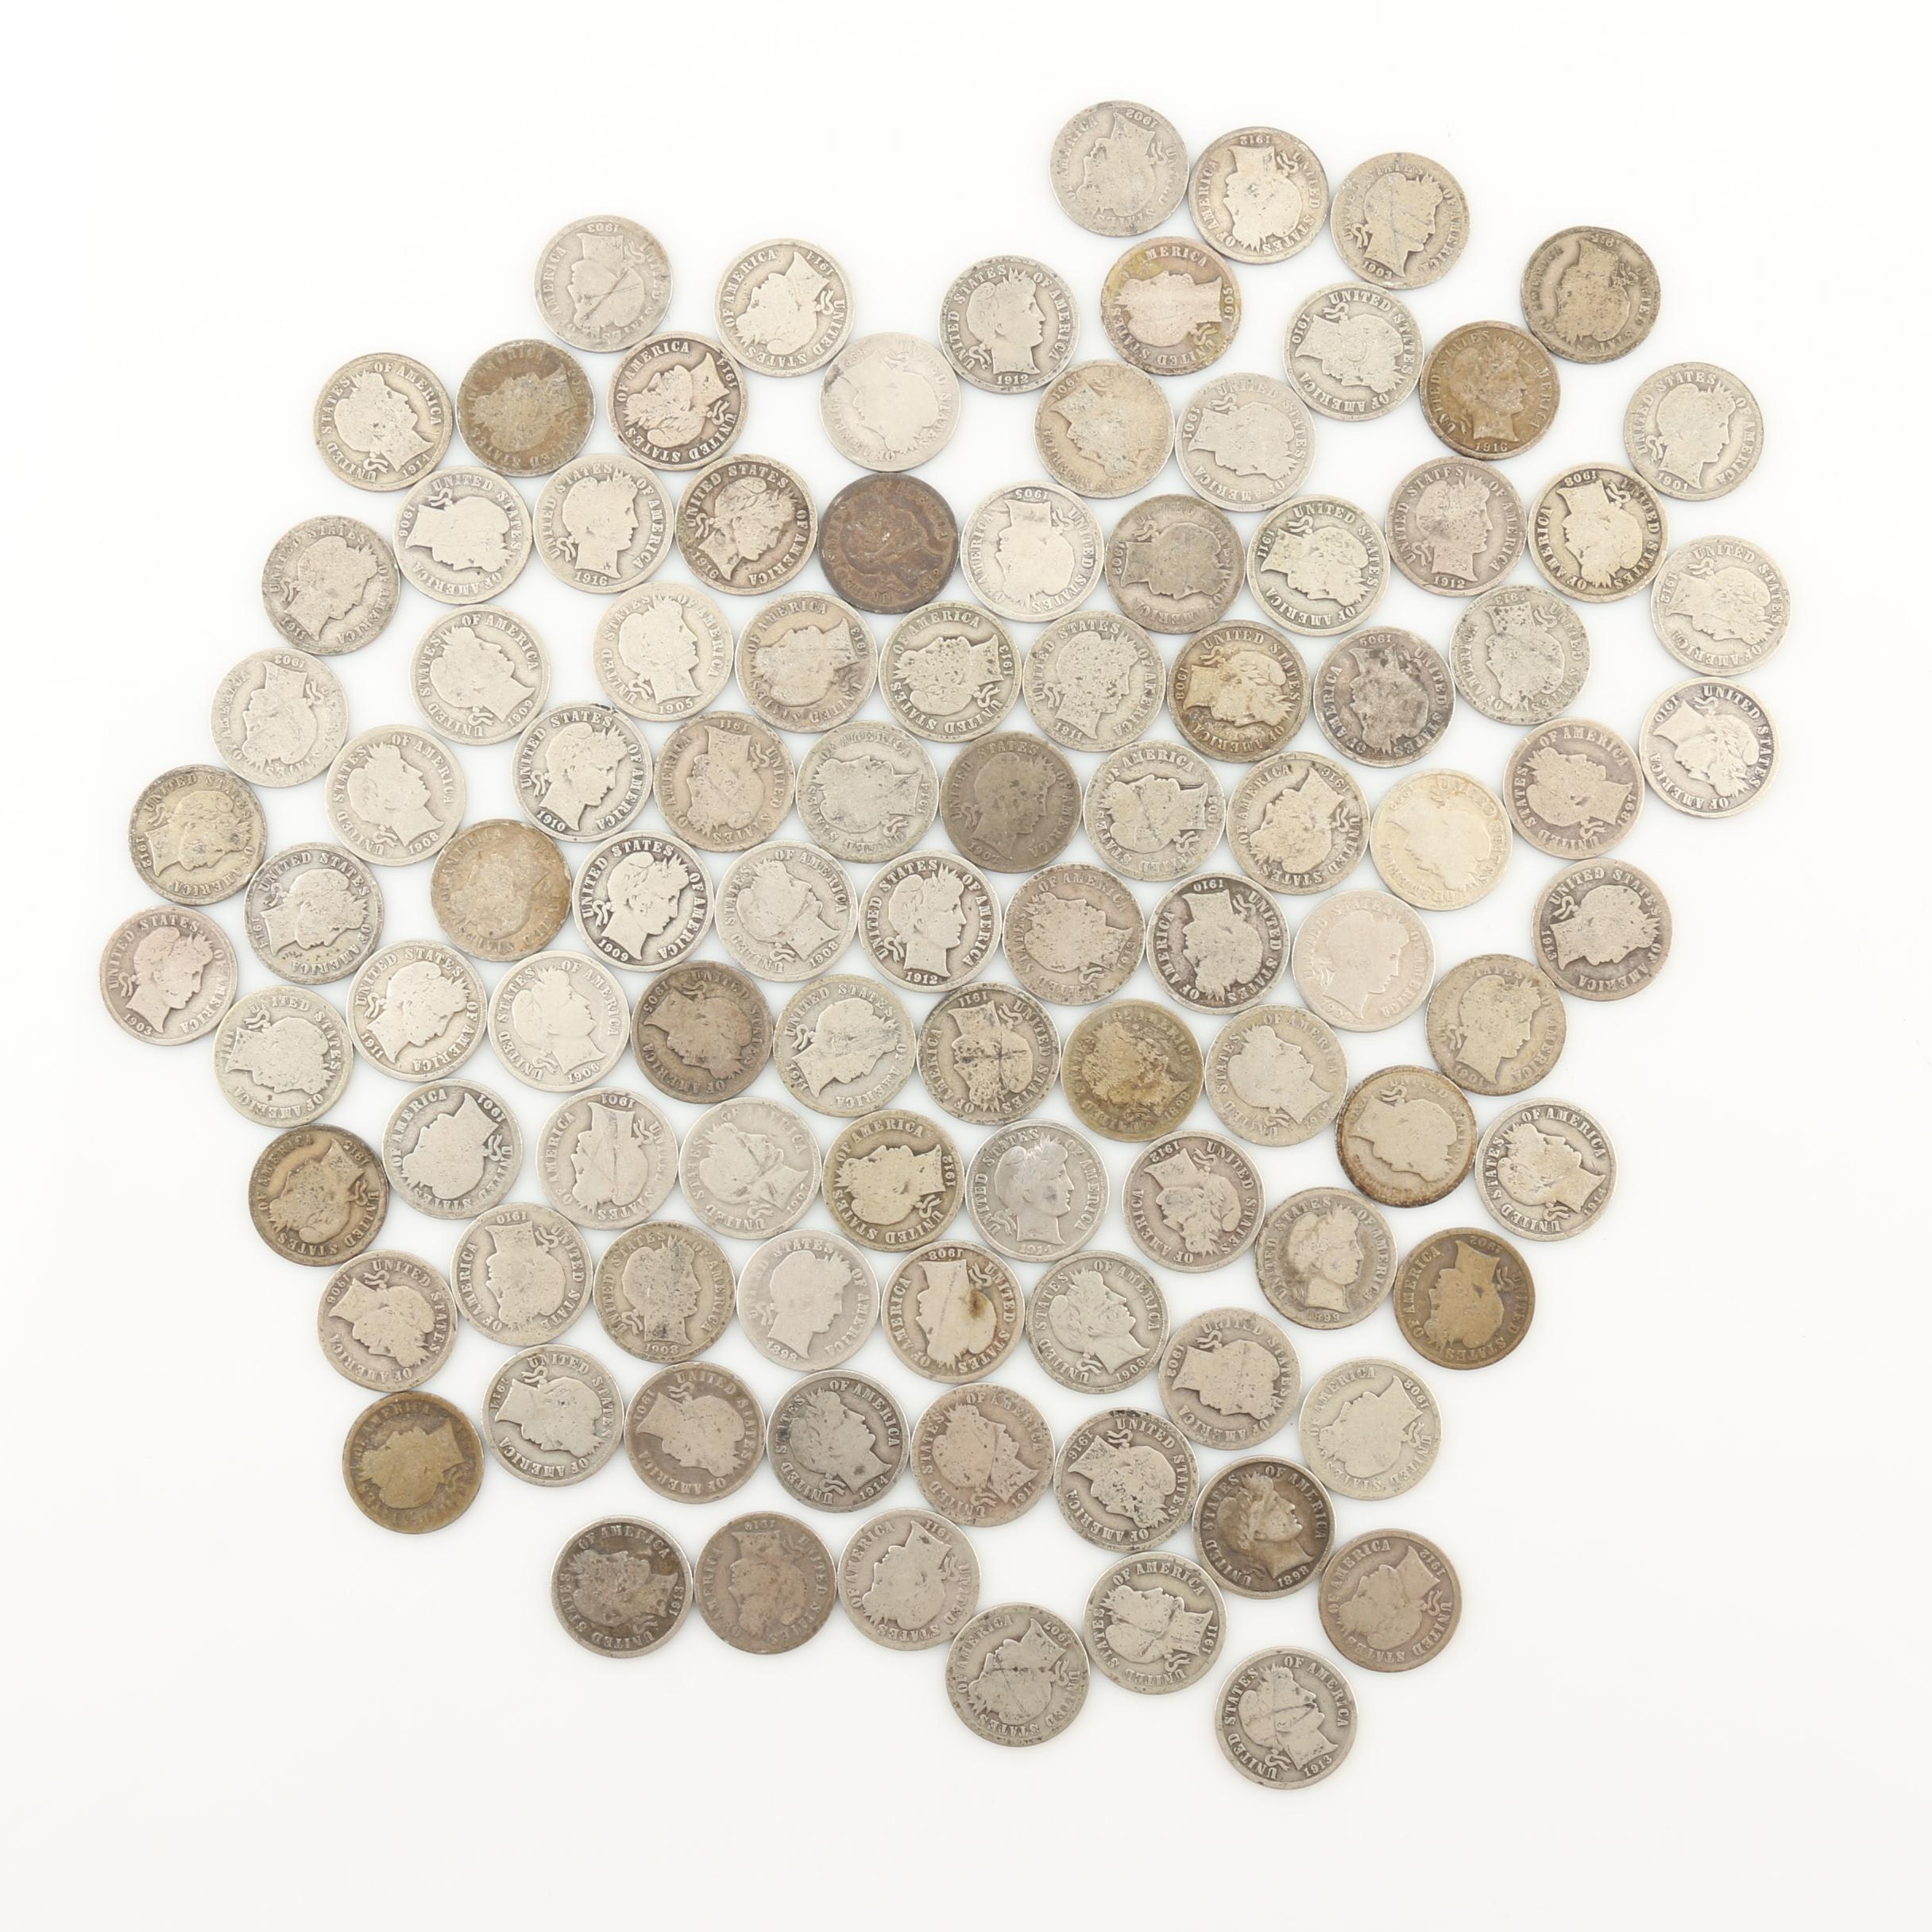 Group of 100 Barber Silver Dimes